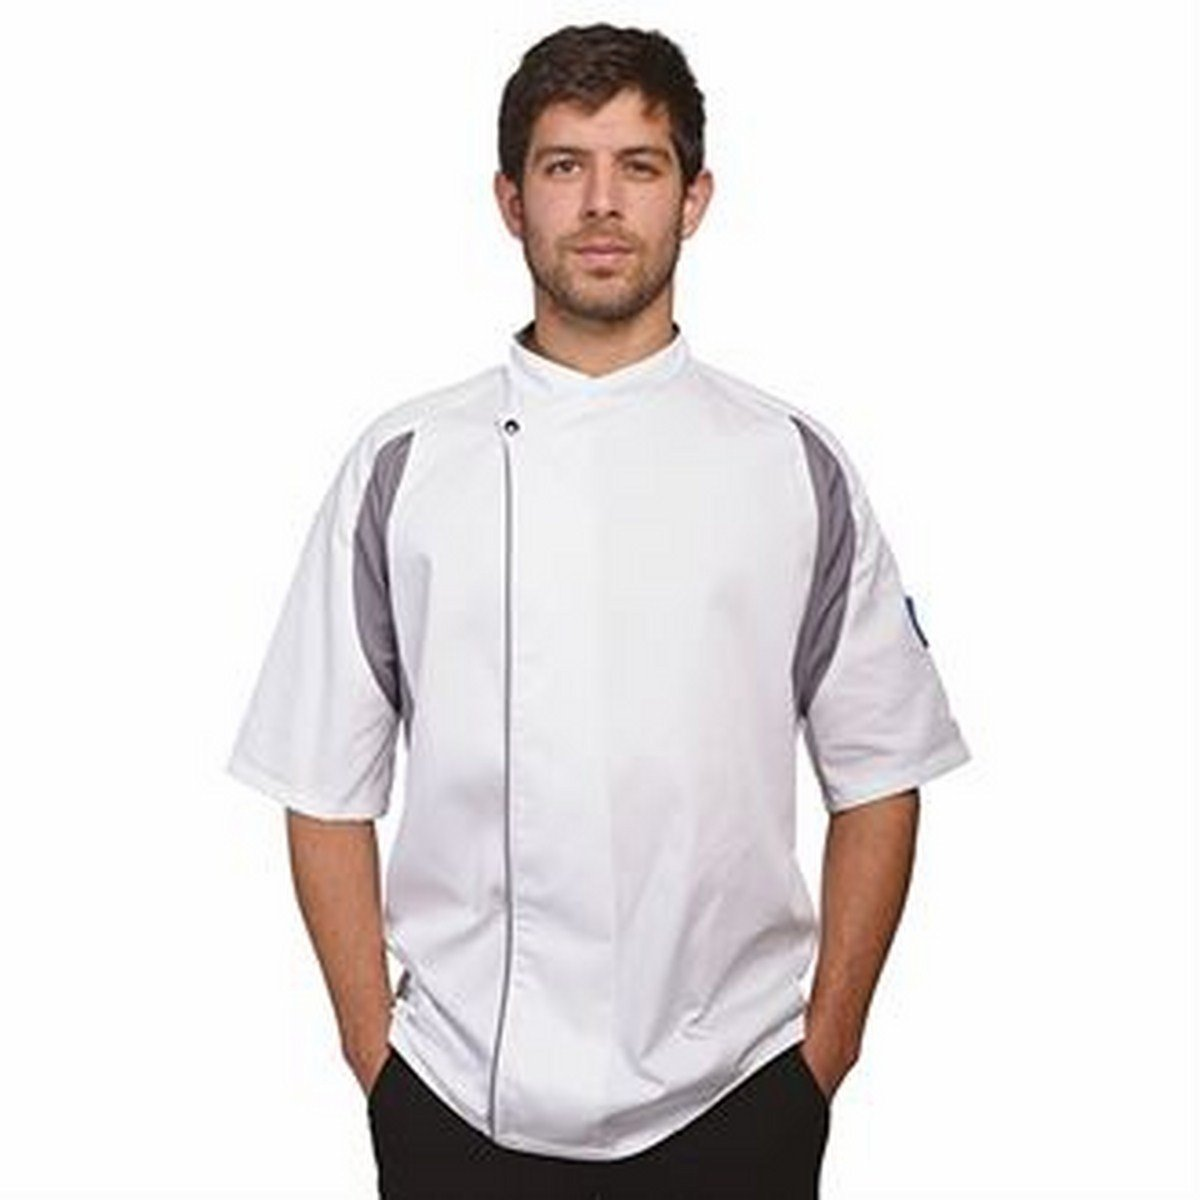 Staycool executive short sleeved tunic (DE12AH, GH,CGH)(White/ Black, L)